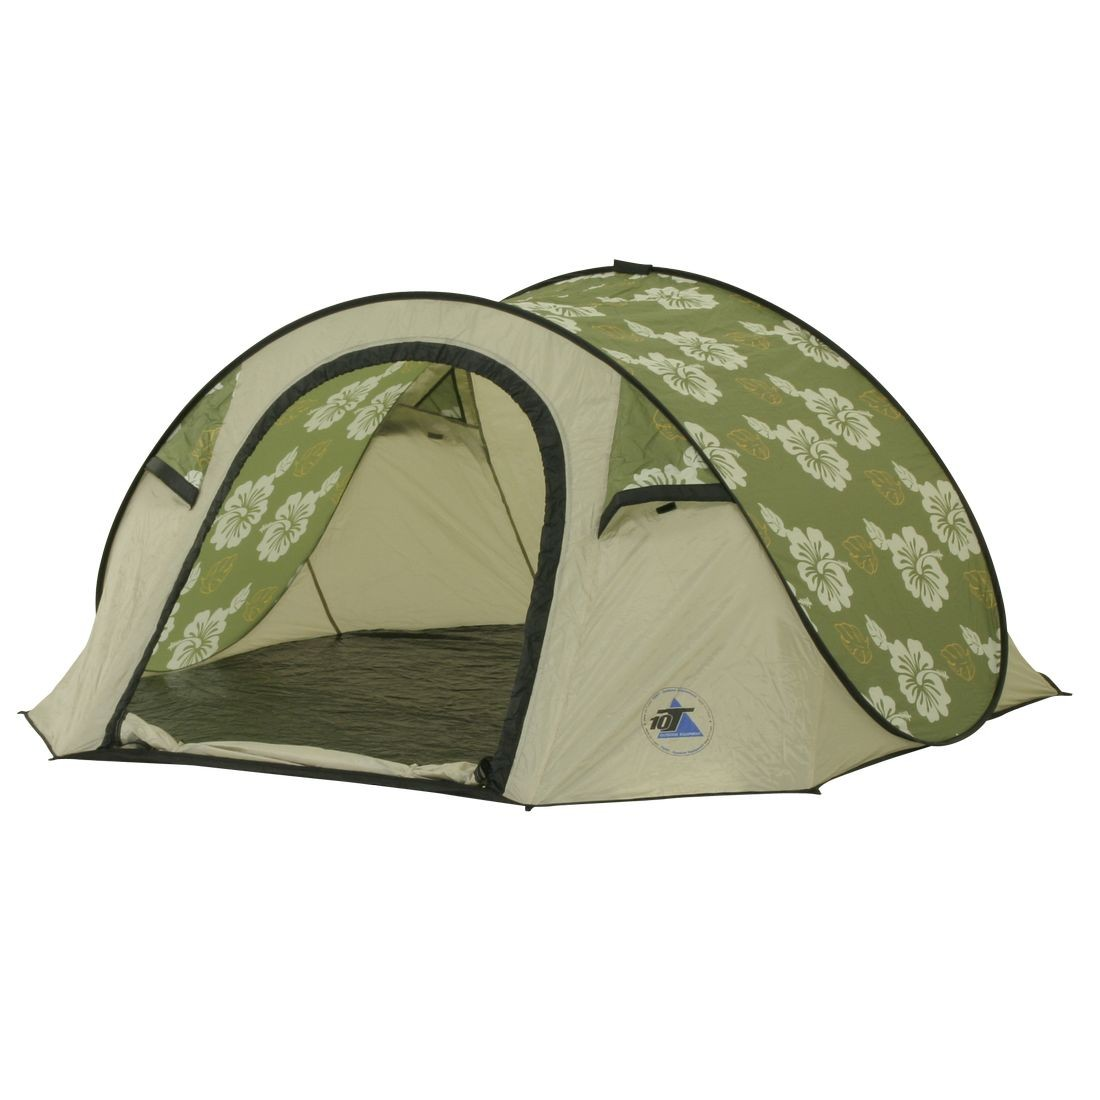 10T Outdoor Equipment - Flowerpop 3 - Image 1  sc 1 st  C&ing-Outdoor.eu & Buy 10T Flowerpop 3 - 3-person pop-up tent with sewn in ground ...